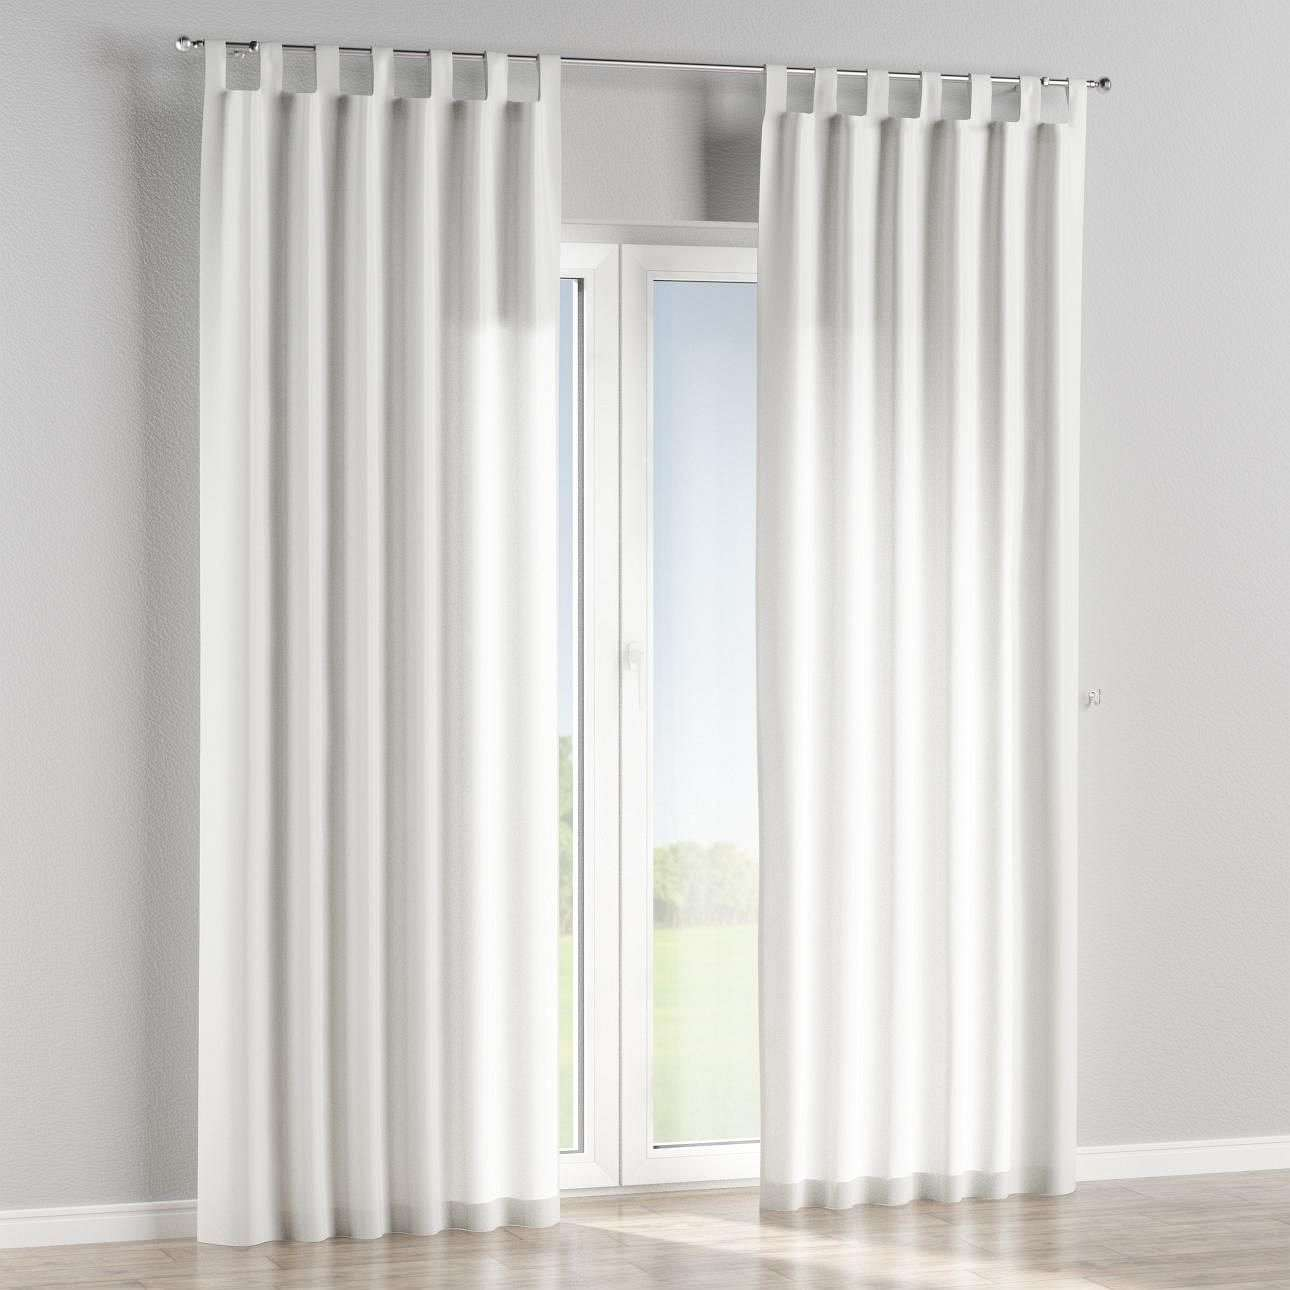 Tab top lined curtains in collection SALE, fabric: 135-11